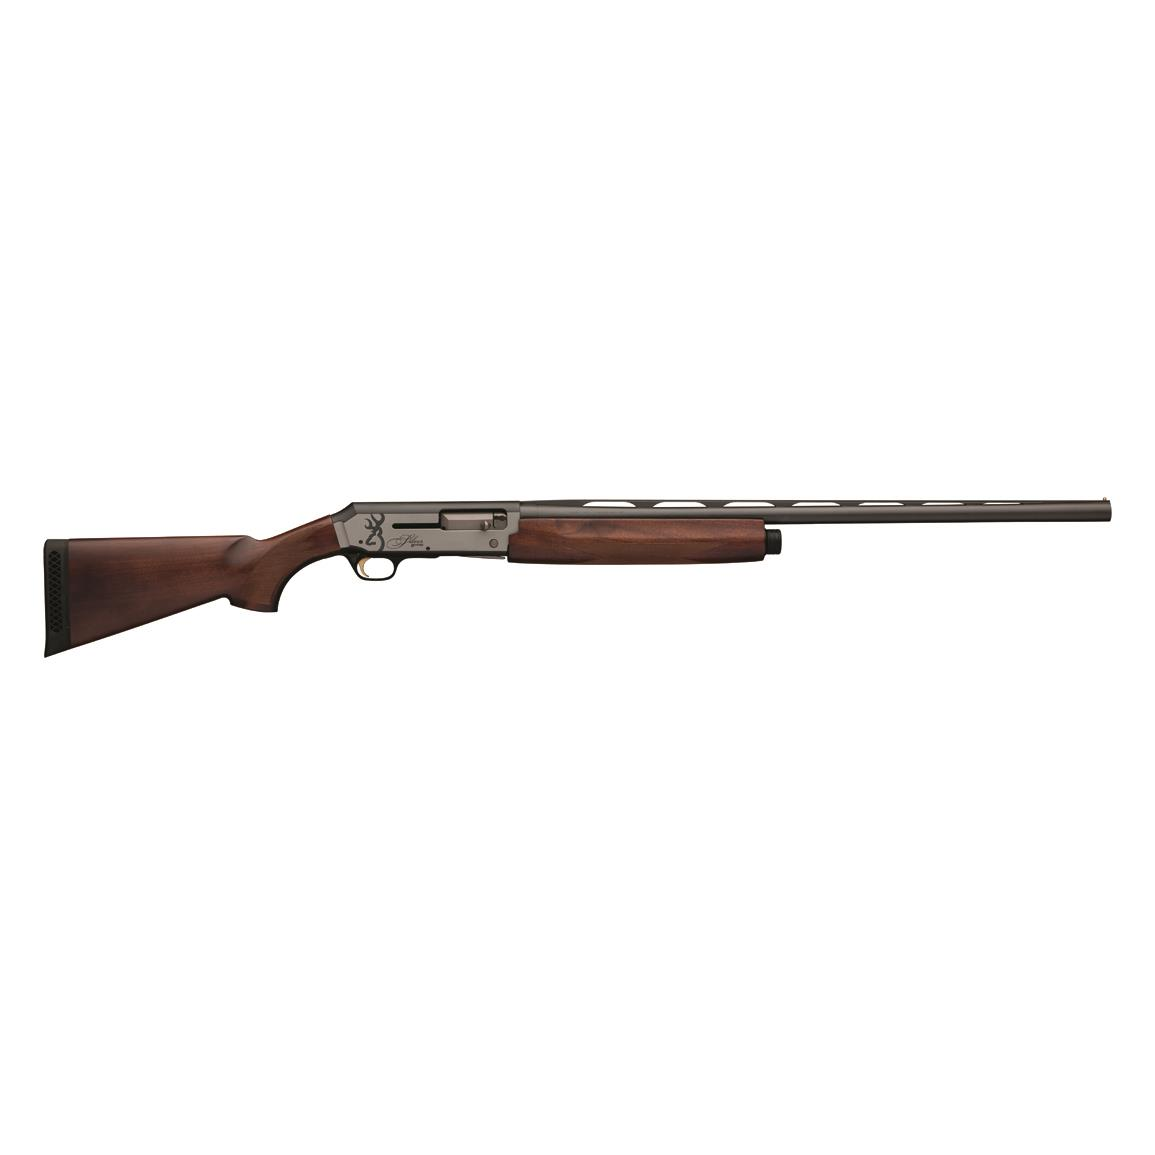 "Browning Silver Hunter Matte, Semi-Automatic, 12 Gauge, 28"" Barrel, 4+1 Rounds"